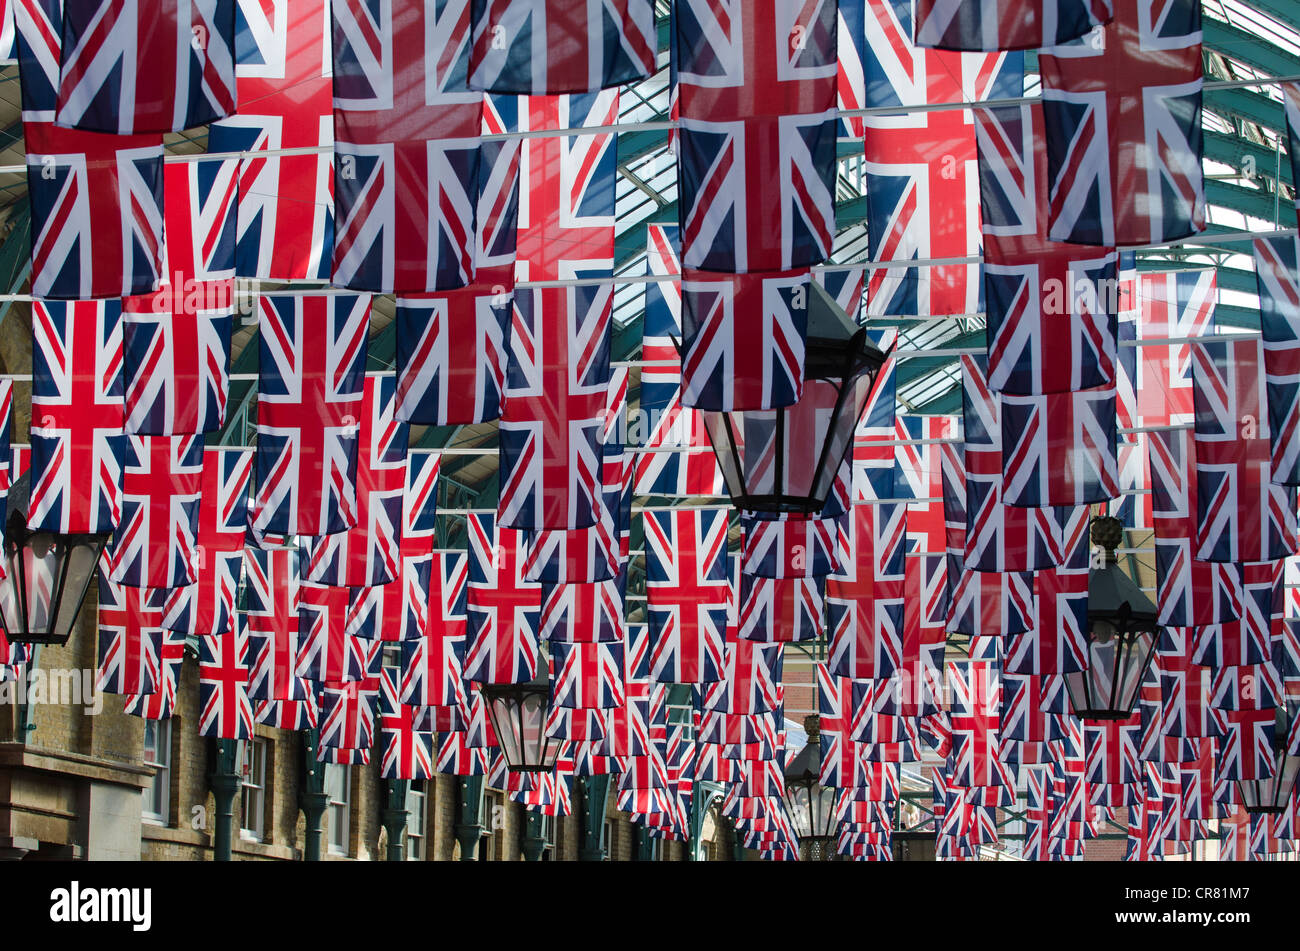 Union Flags hanging from Covent Garden covered market Westminster, London Uk - Stock Image